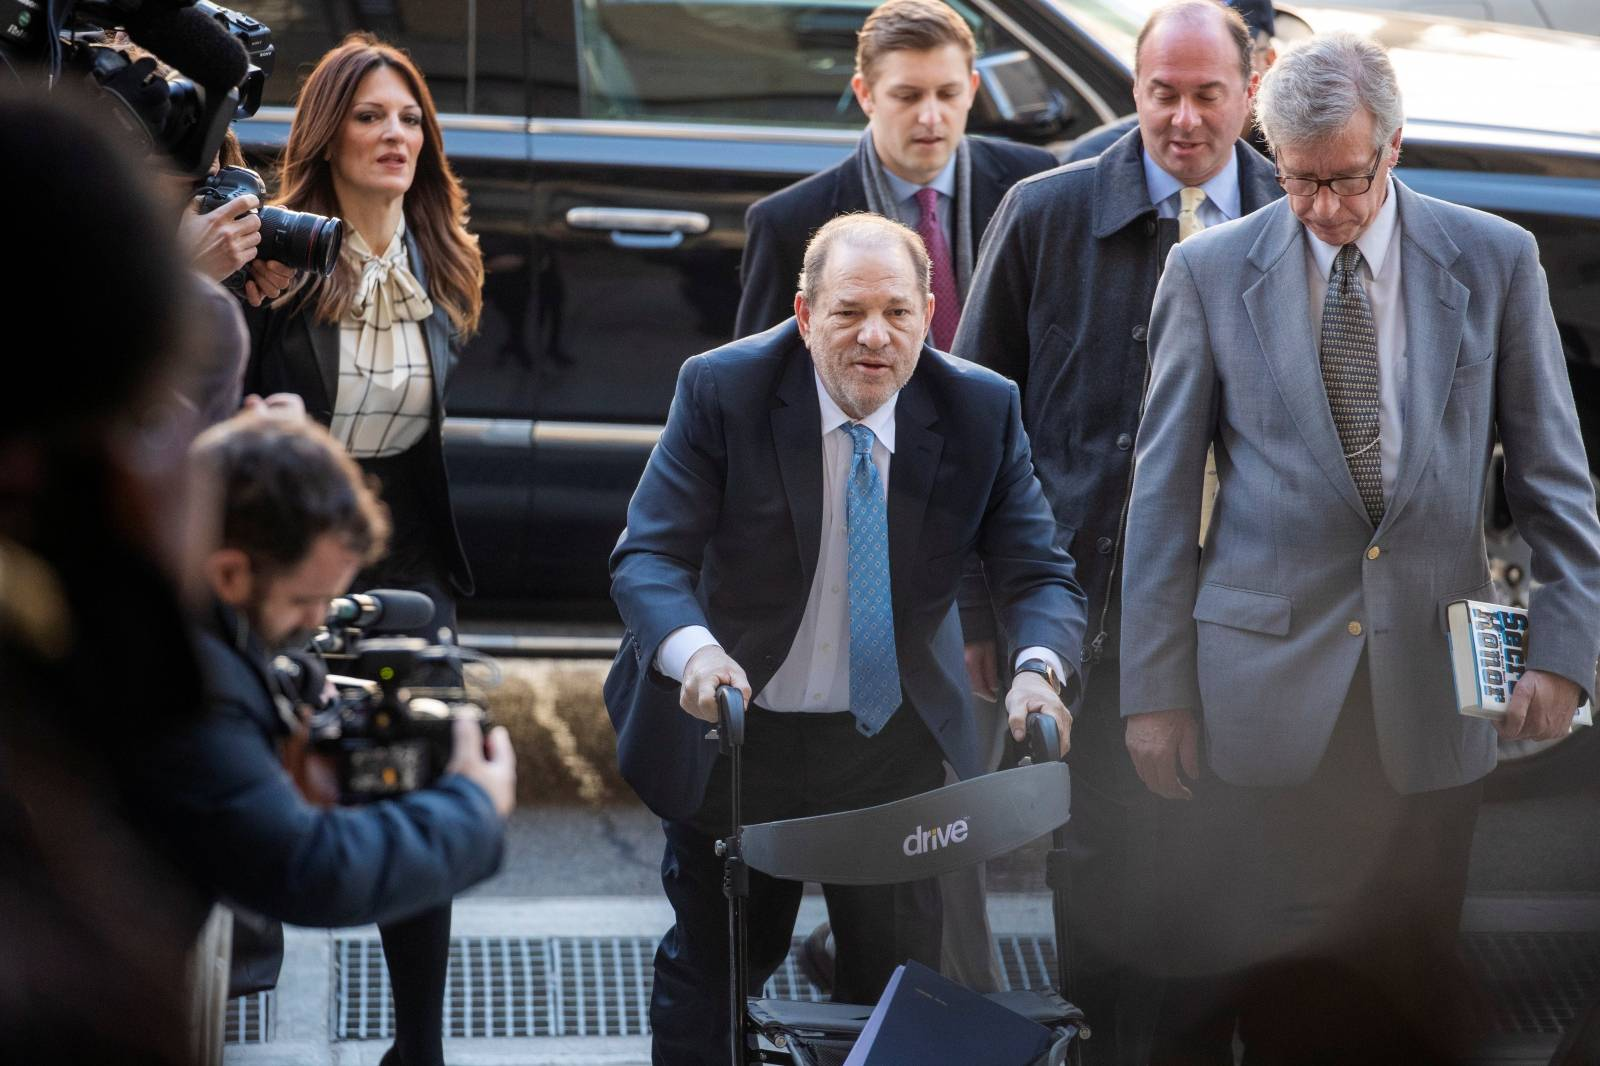 Harvey Weinstein arrives at New York Criminal Court for another day of jury deliberations in his sexual assault trial in the Manhattan borough of New York City, New York